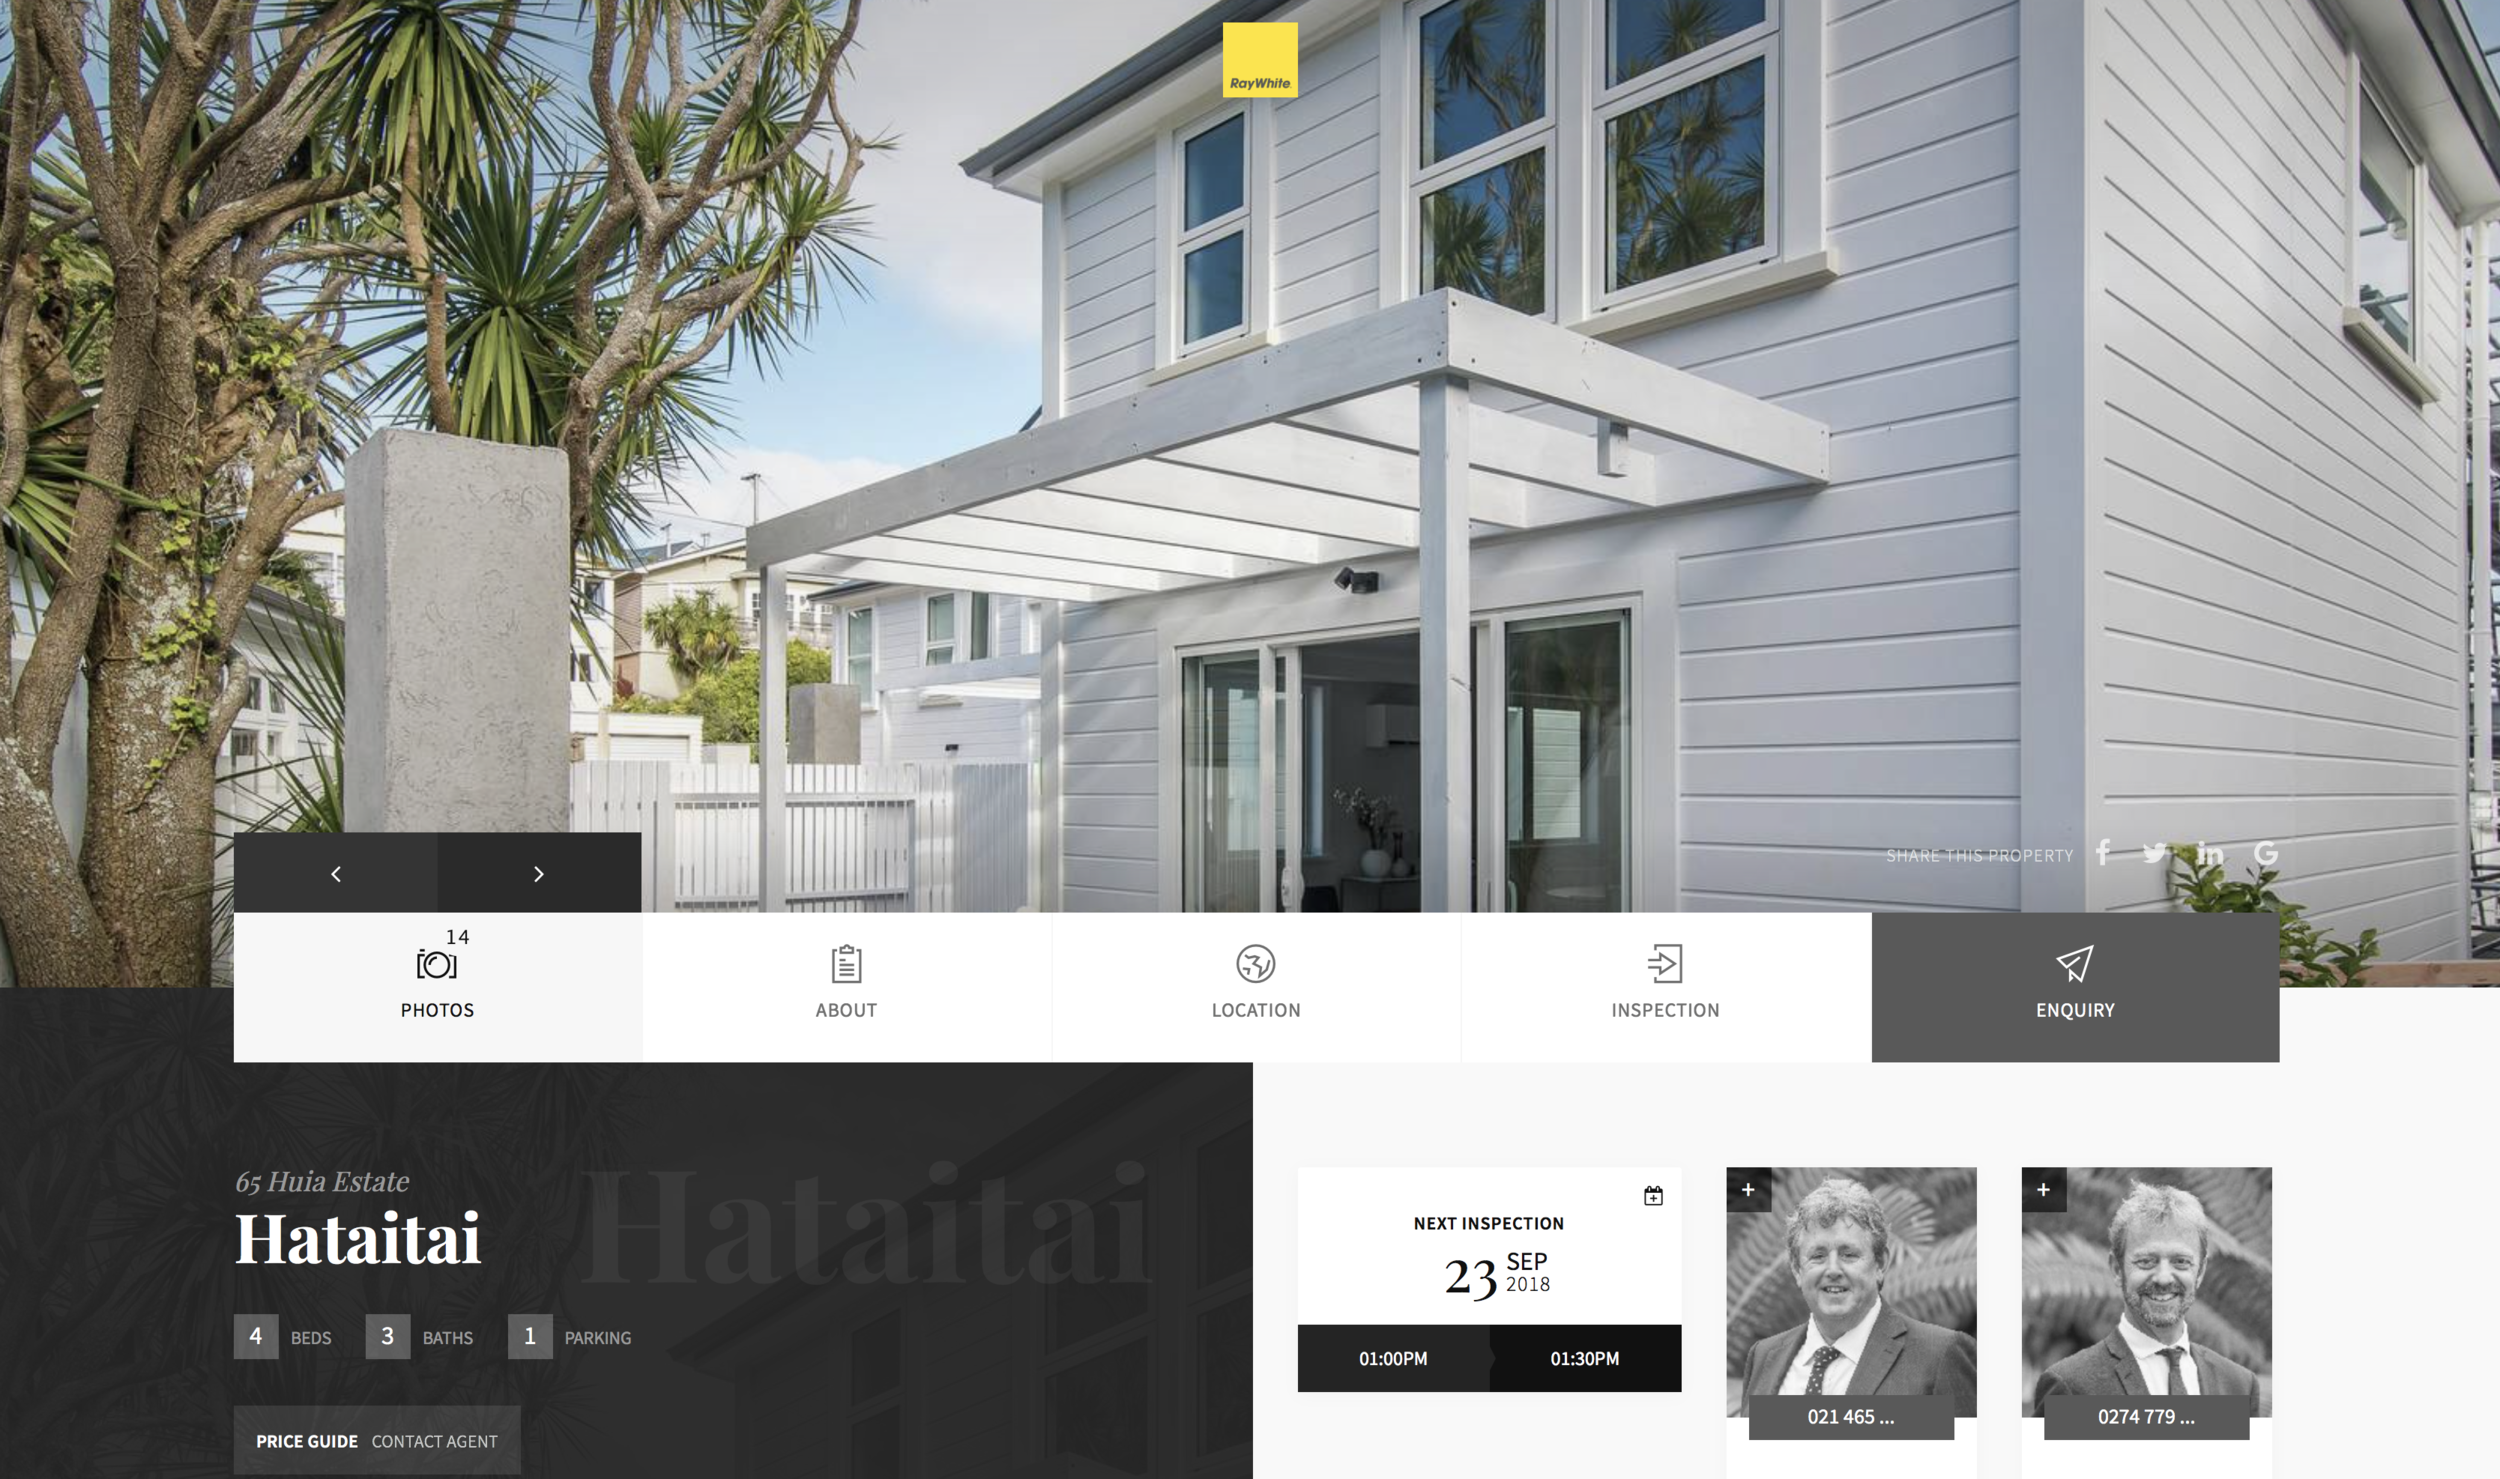 Landing page of the property - More information provided with viewing times and contact details